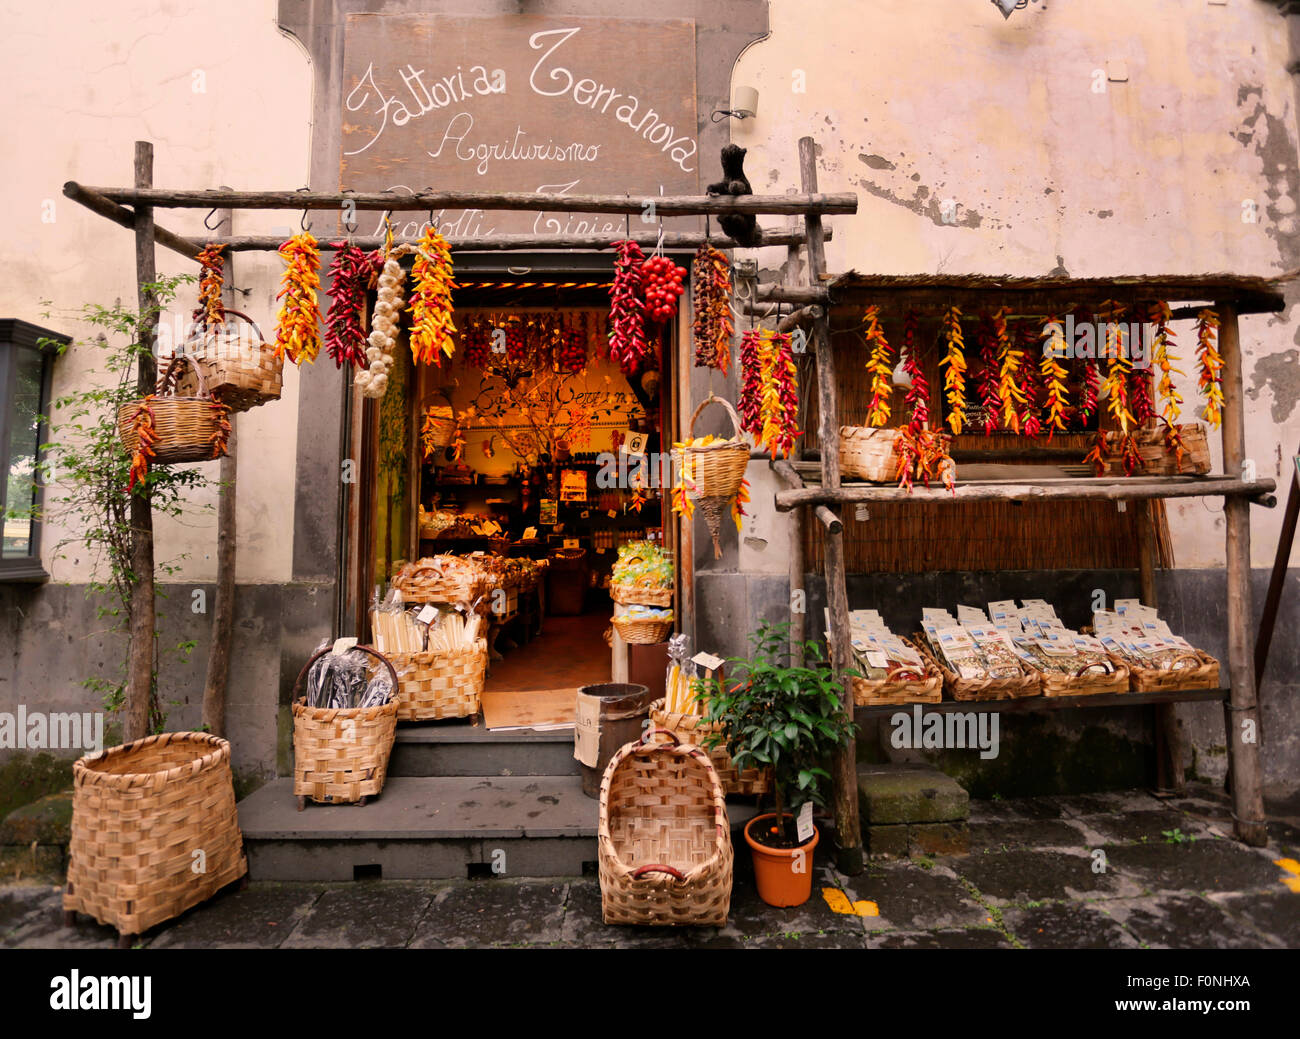 Des plats italiens traditionnels magasin,Côte d'Amalfi, Italie Photo Stock